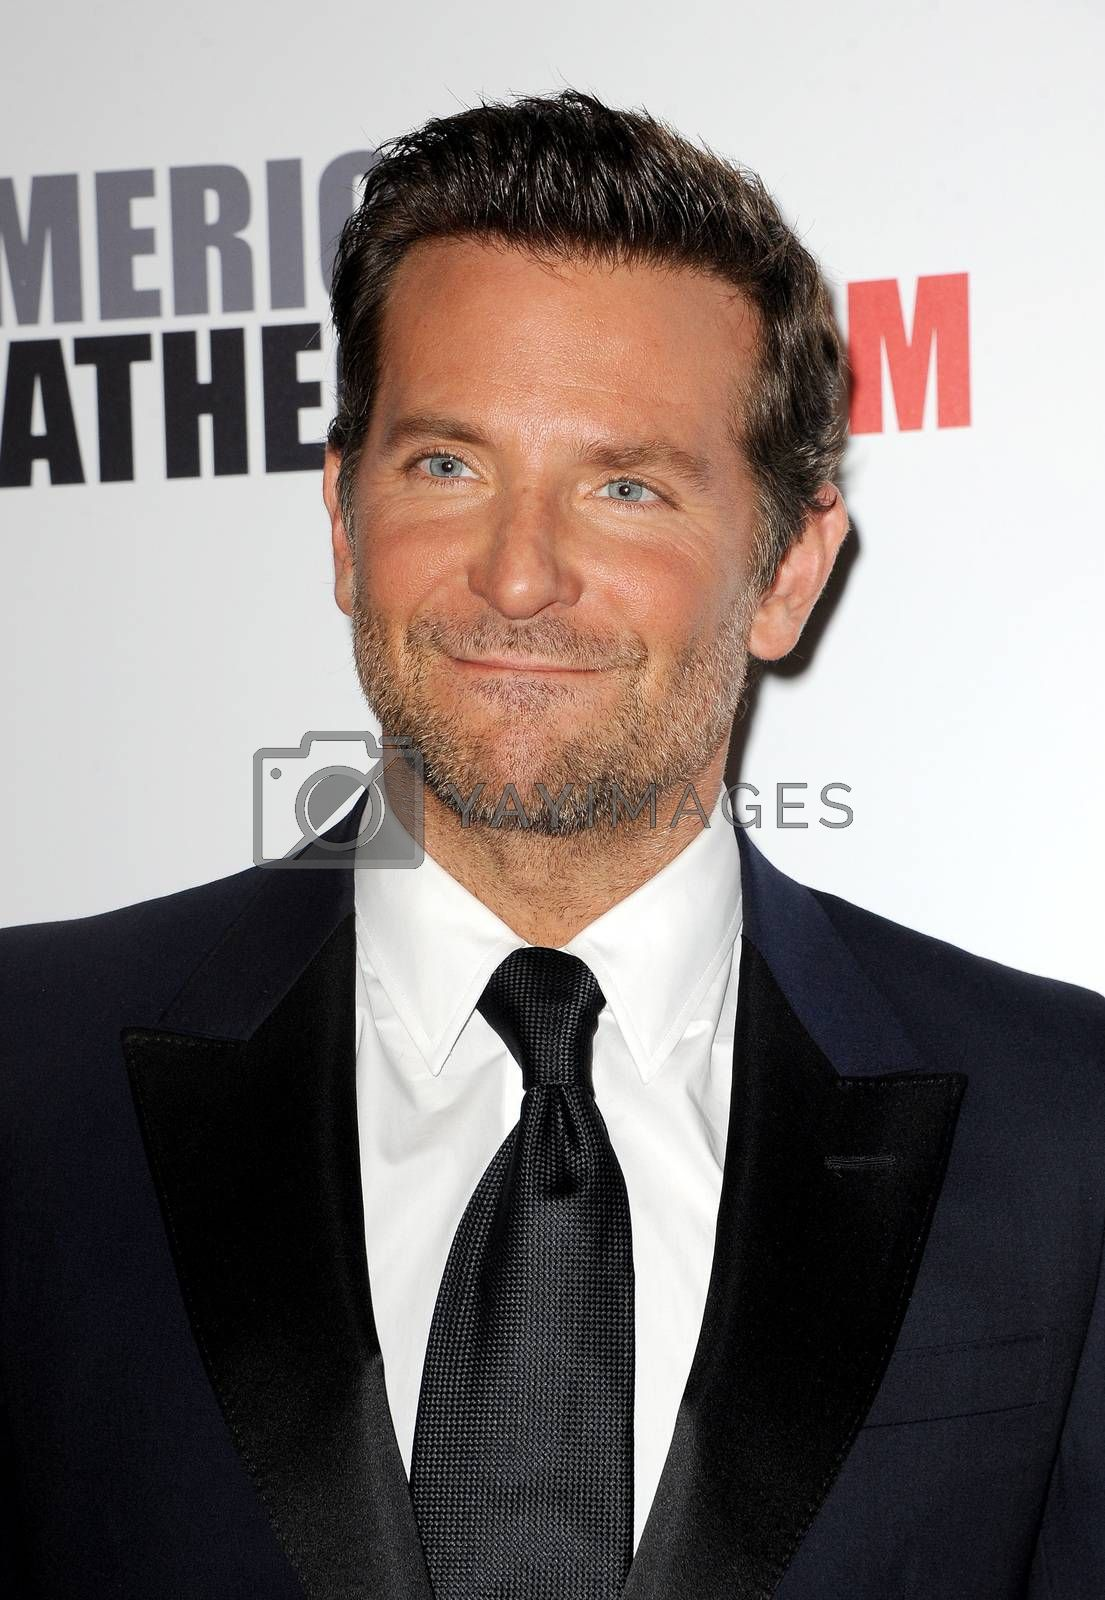 Bradley Cooper by Lumeimages